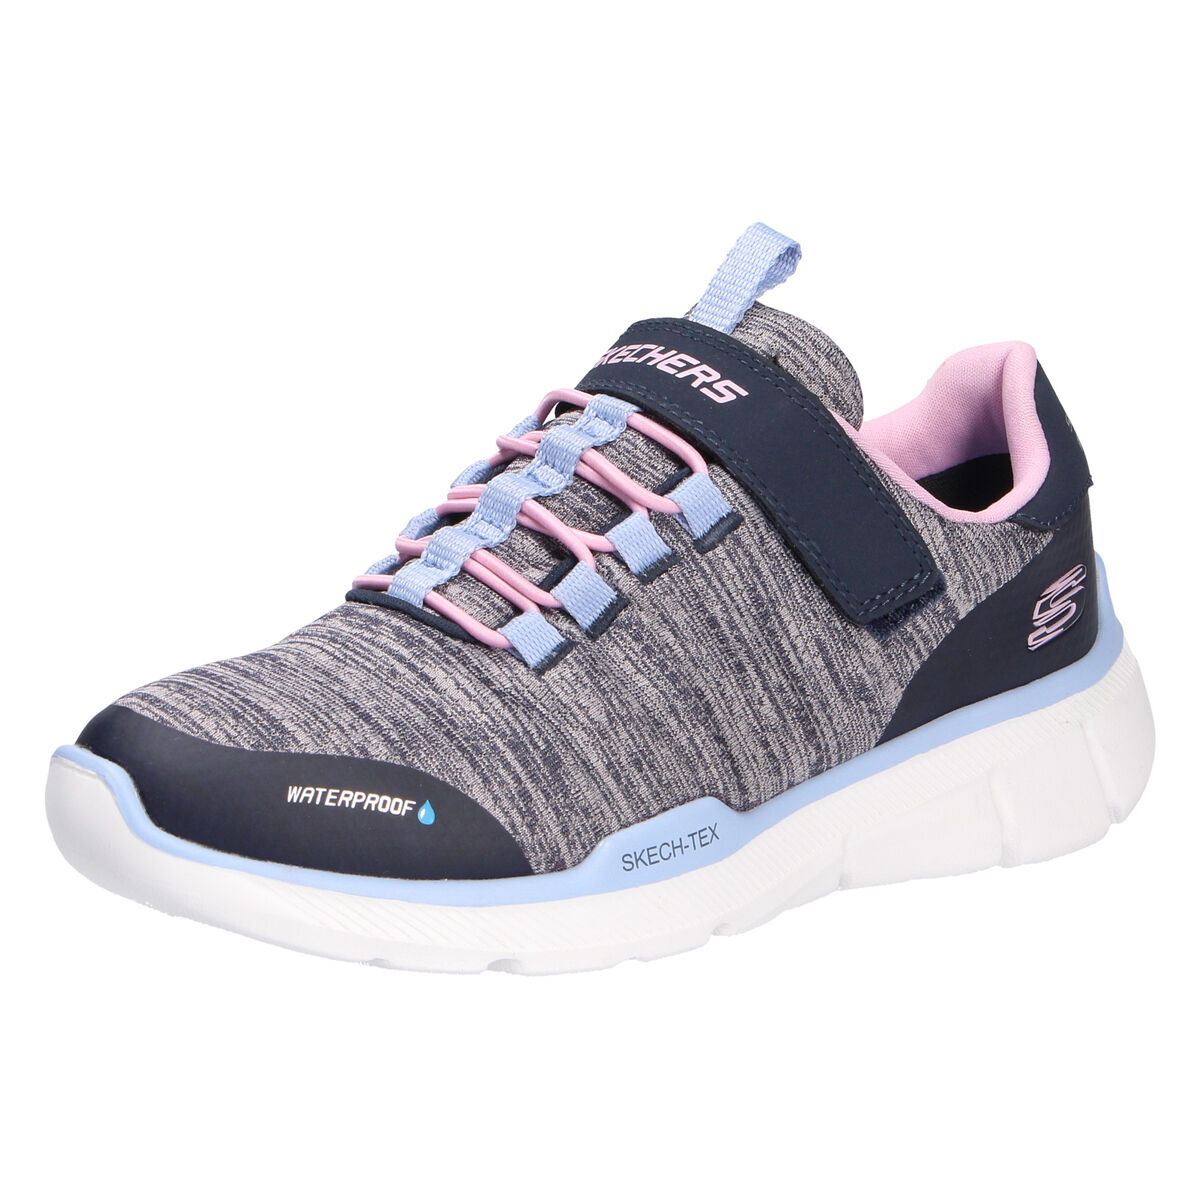 National Day Of Reconciliation ⁓ The Fastest Skechers Led